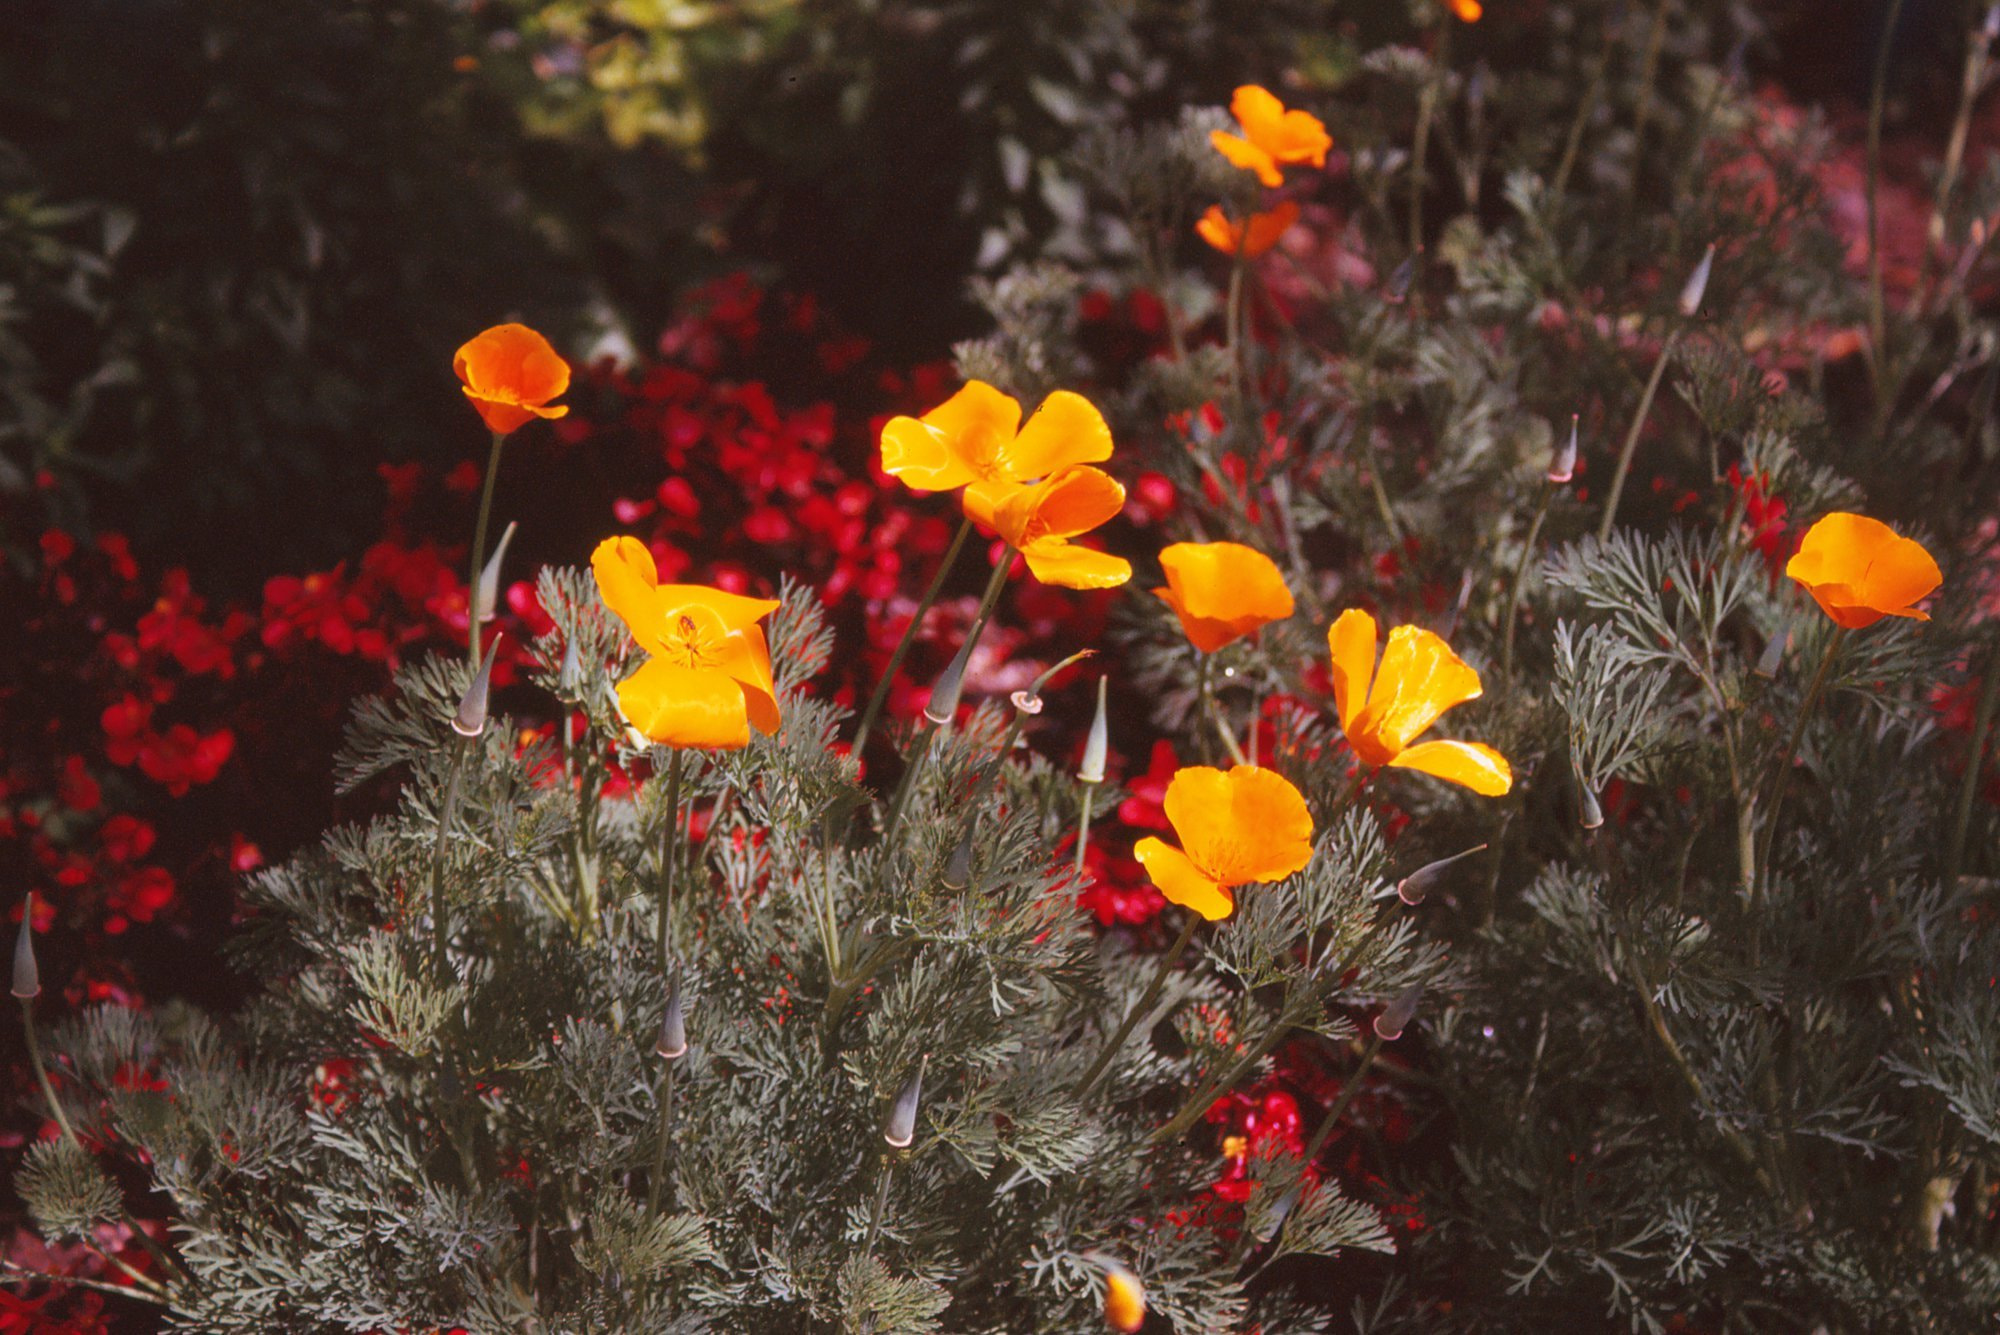 Photograph Poppies by Thomas Webb on 500px